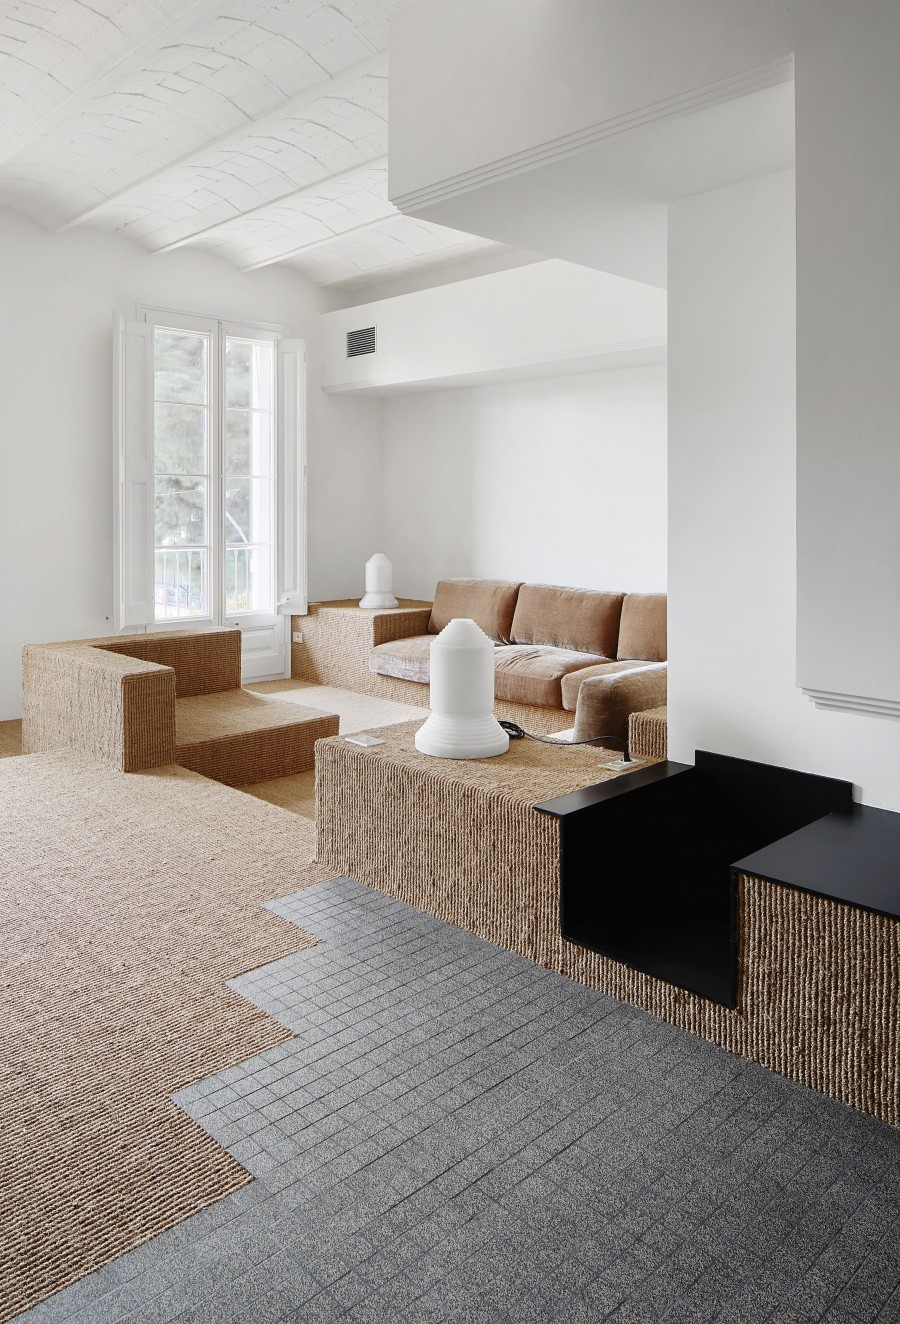 house-girona-barcelona-arquitectura-g-interiors-residential-spain_dezeen_2364_col_3